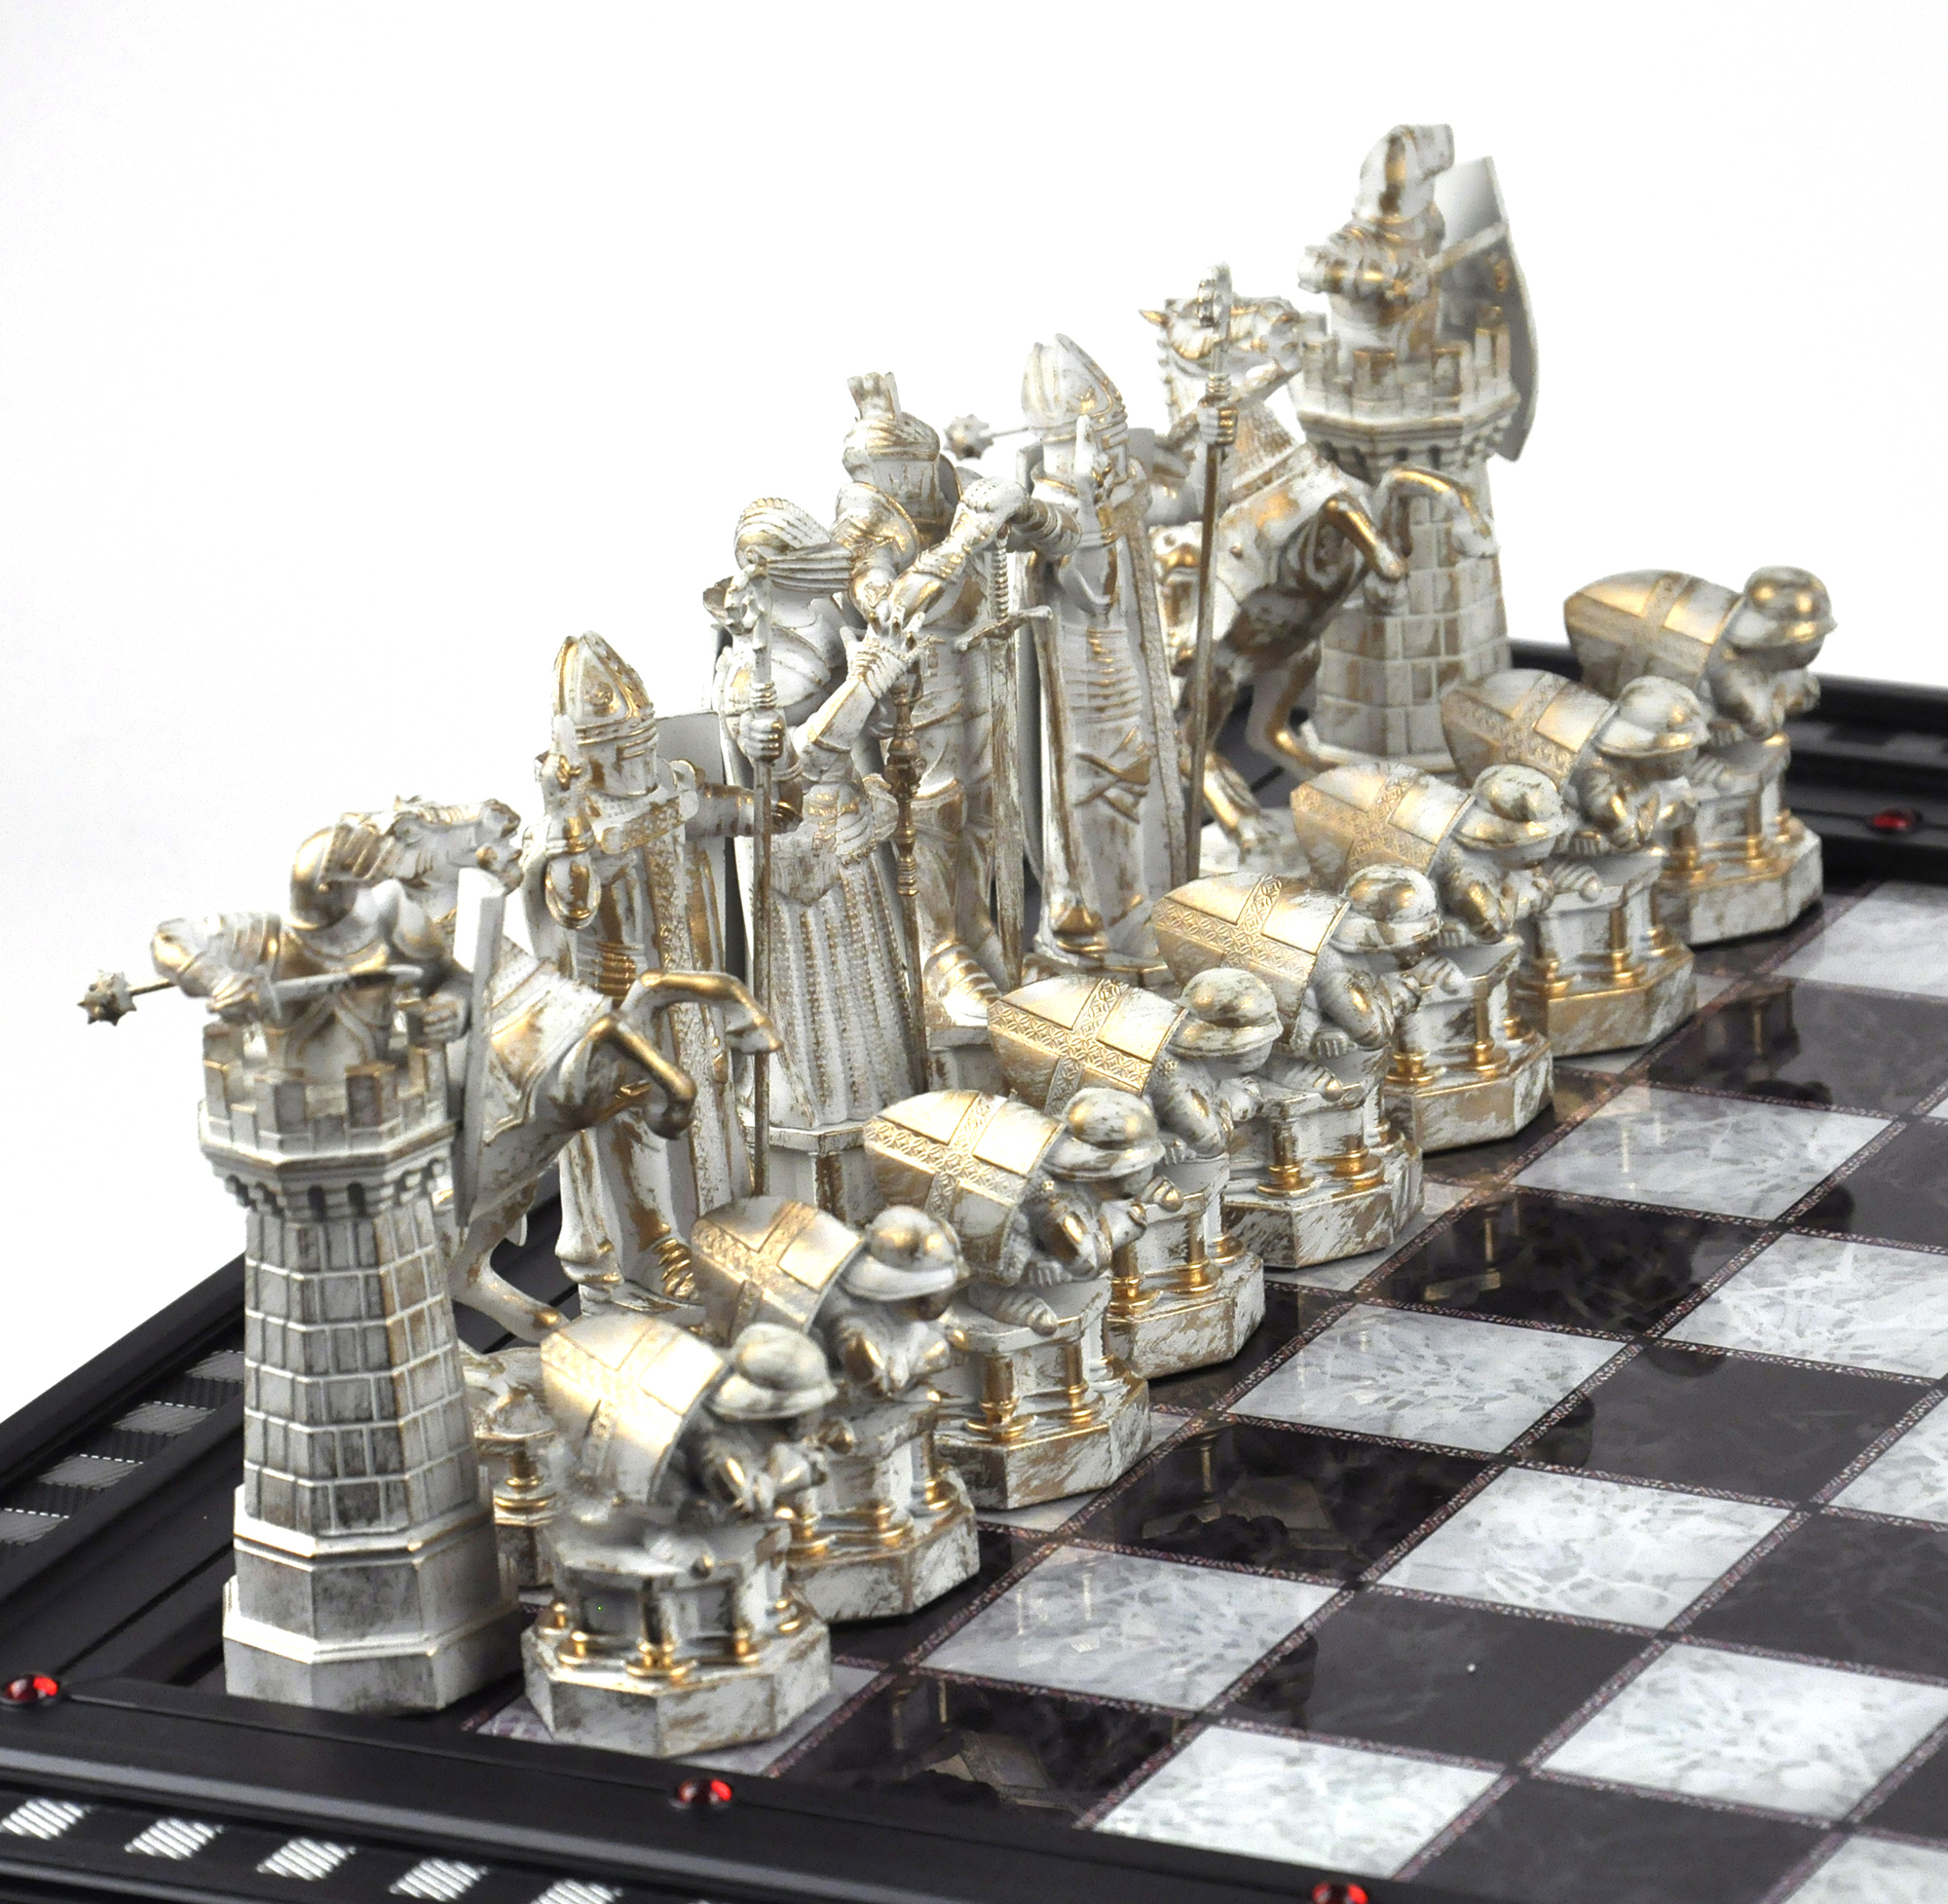 The wizard 39 s chess set from harry potter and the philosophers stone deluxe rep ebay - Deluxe chess sets ...